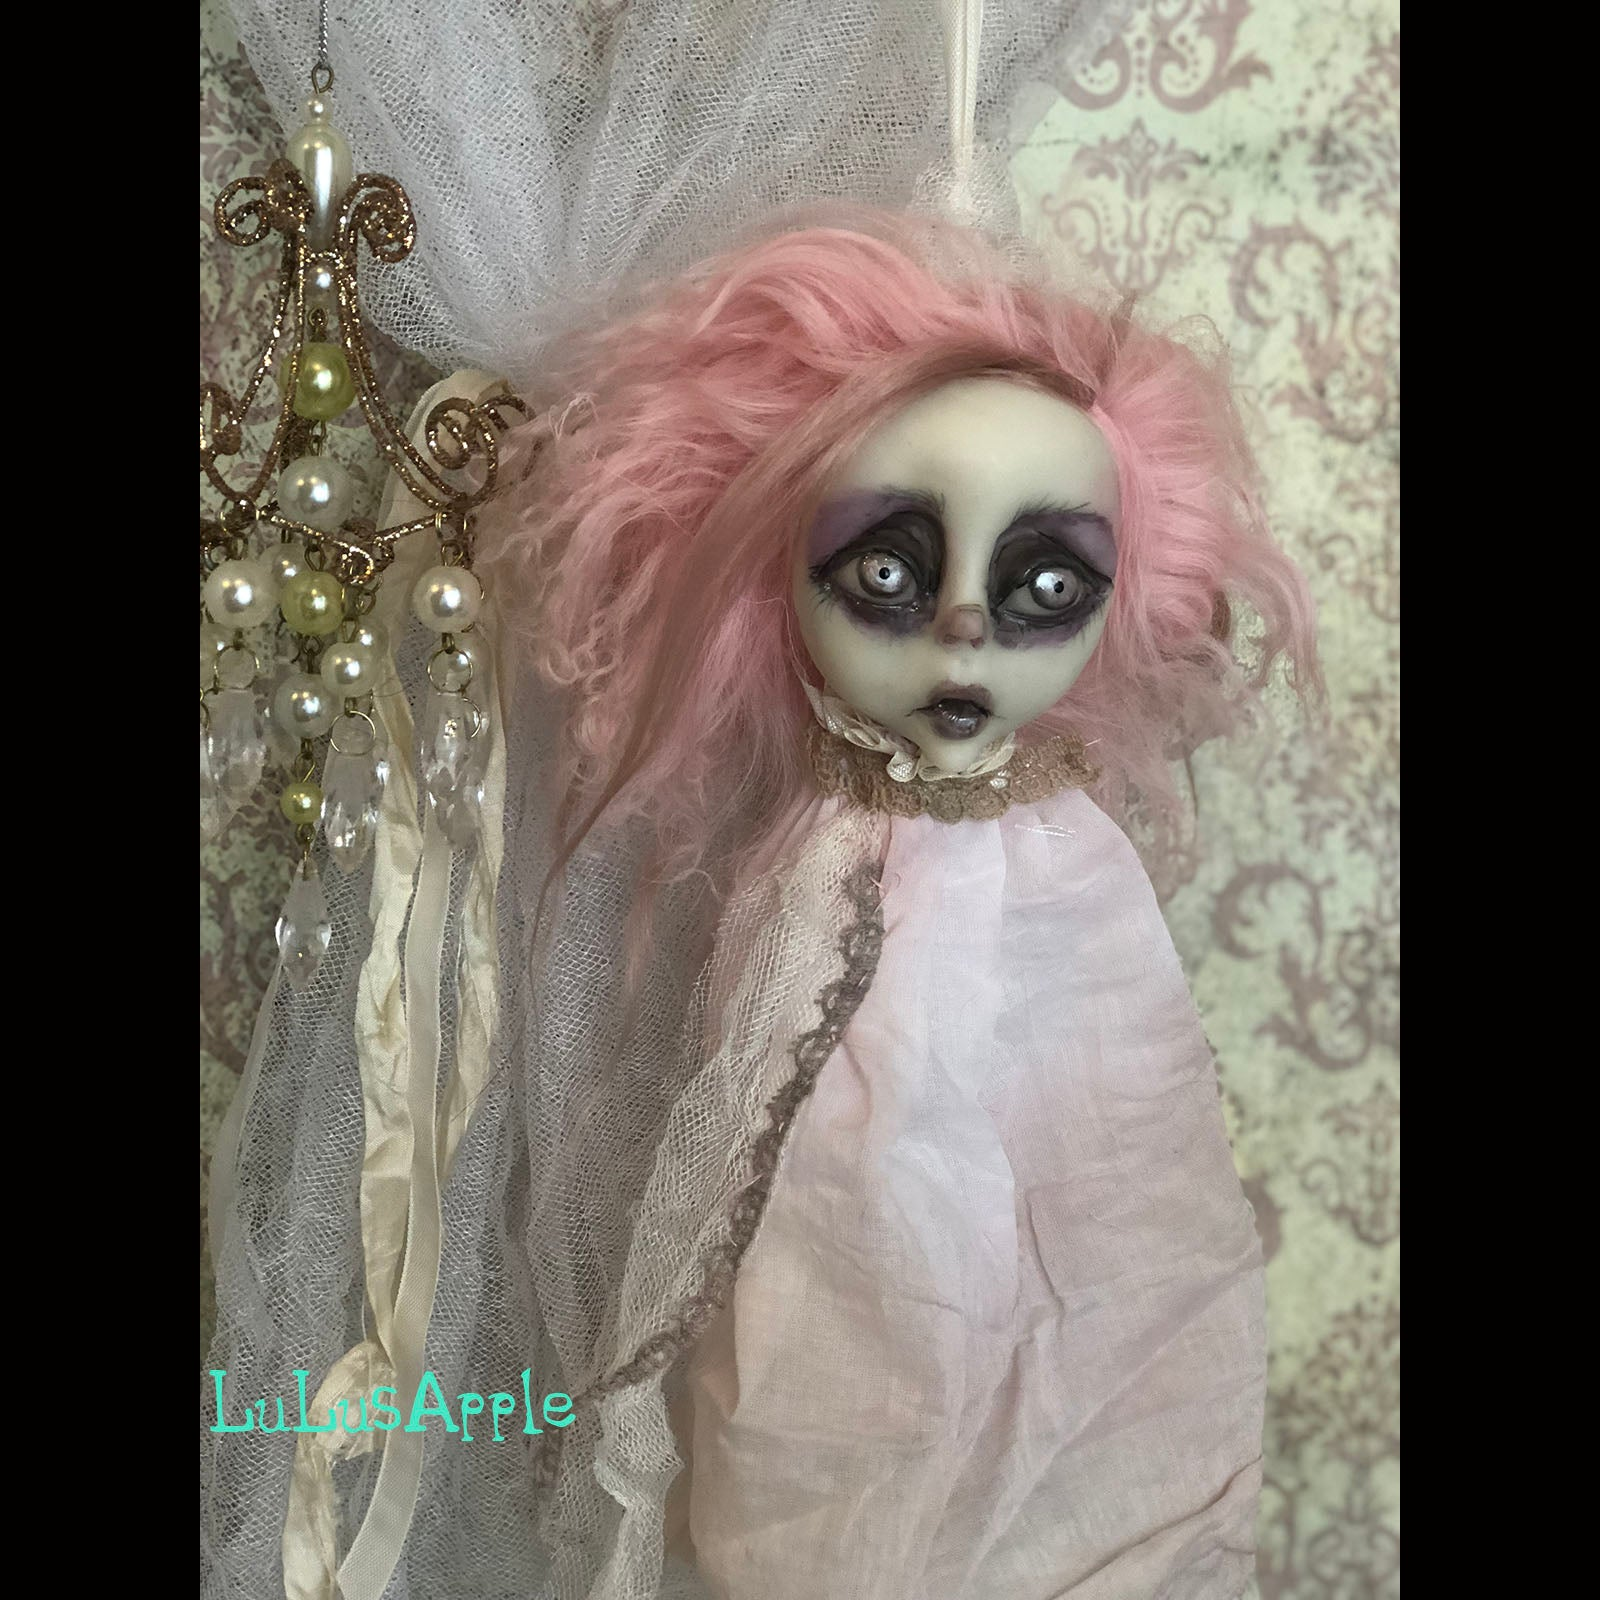 Decapitated pink Head Ghostly ornament OOAK LuLusApple Art Doll